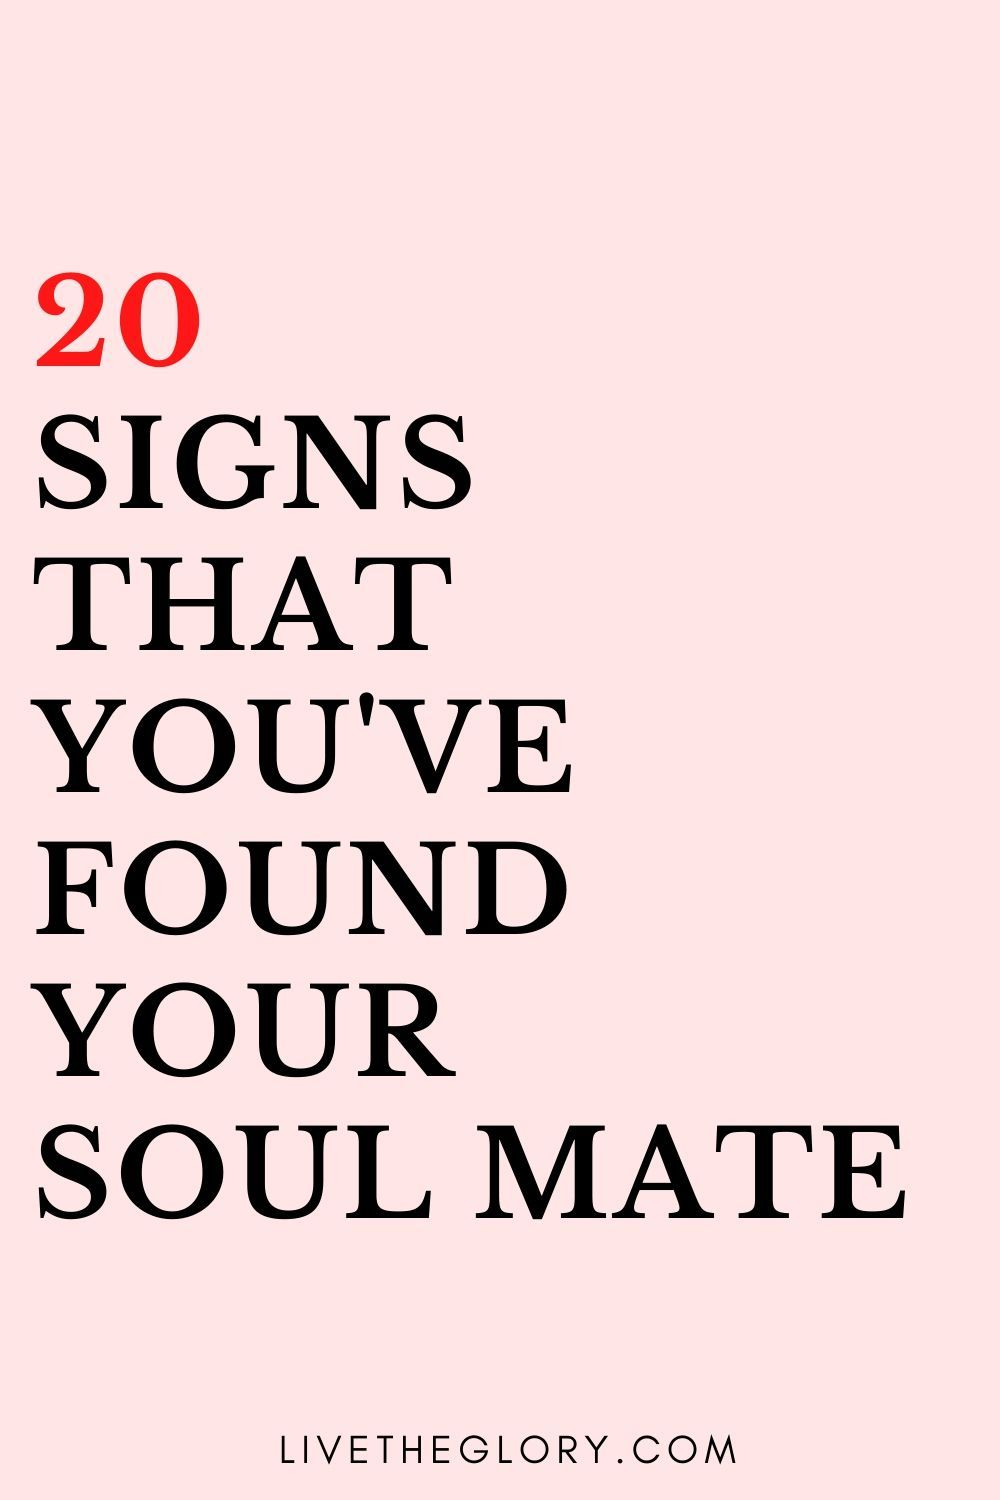 He signs my that soulmate is 7 Little